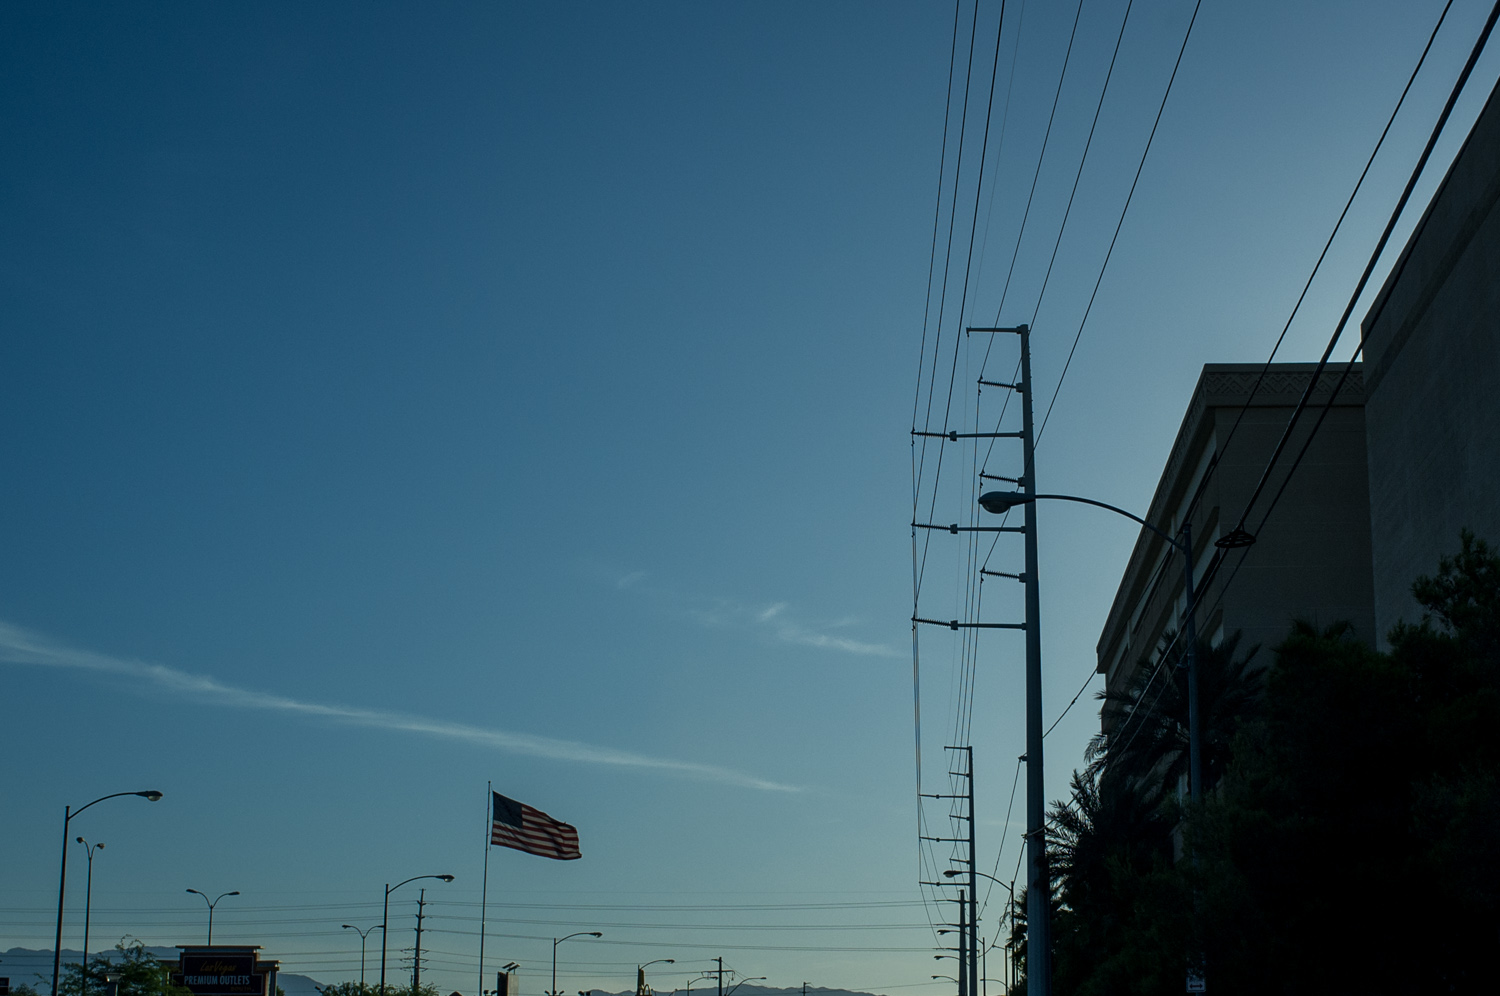 The American flag is EVERYWHERE; just in case you forget where you are ;)